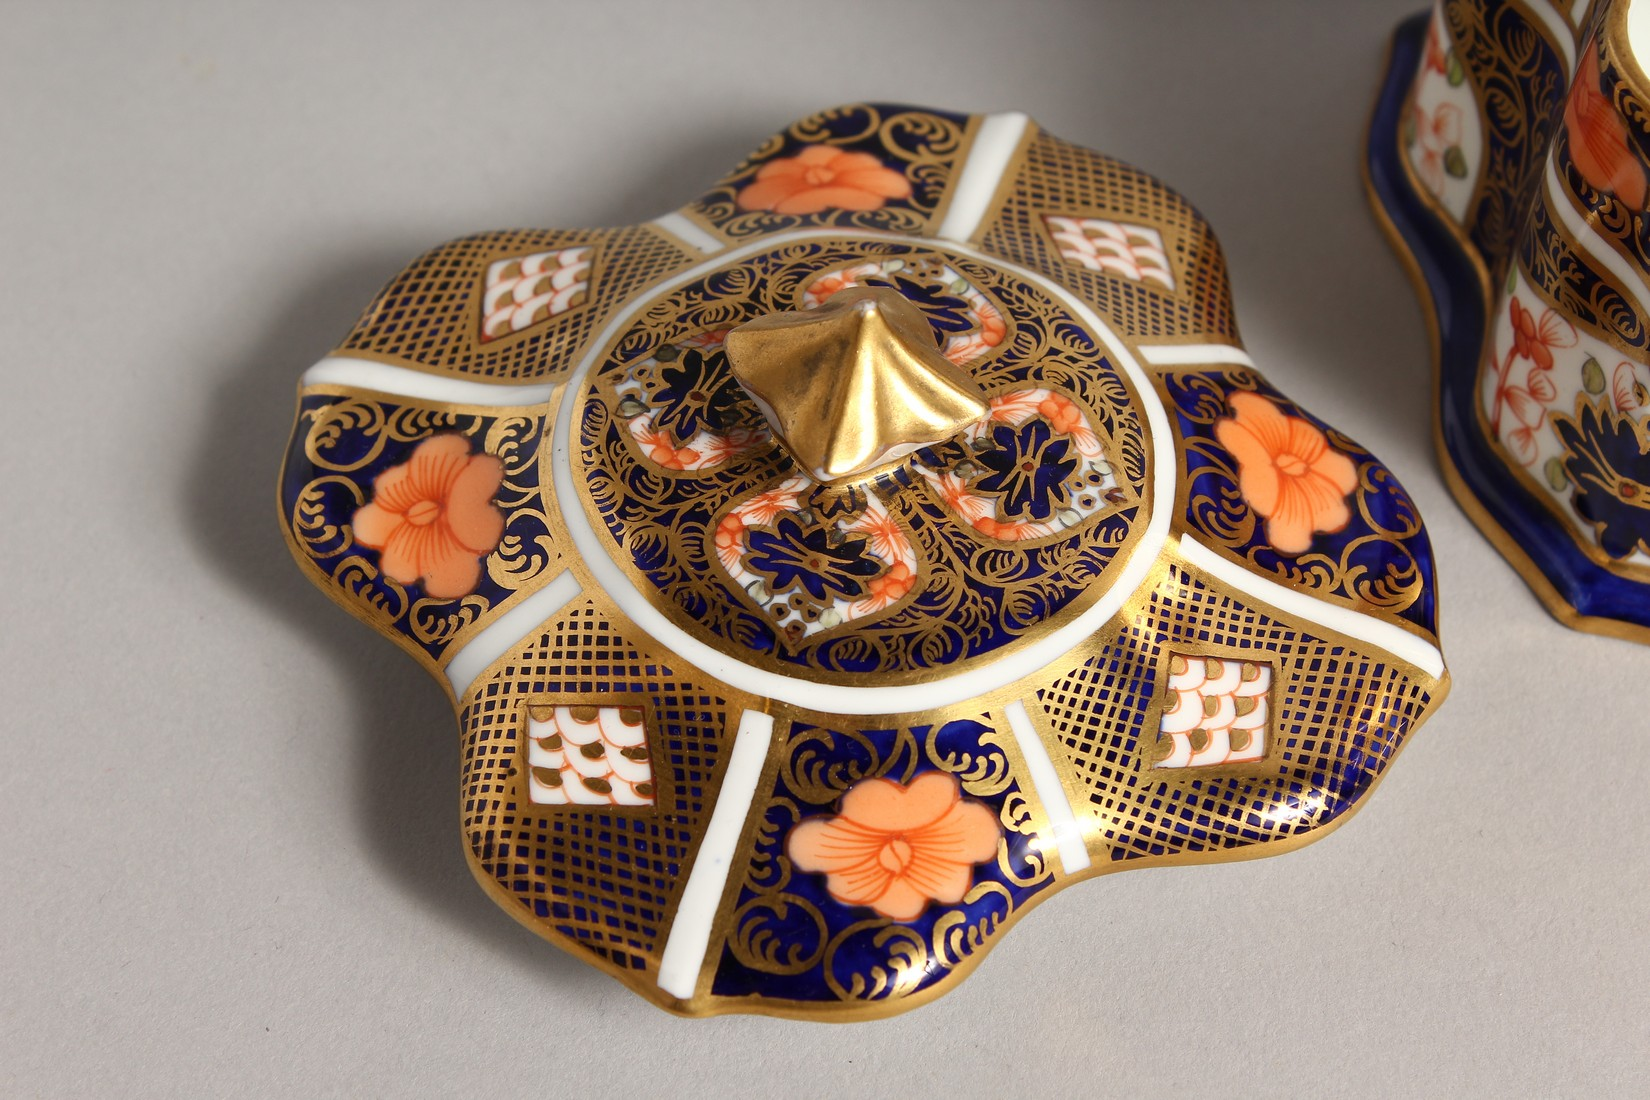 A ROYAL CROWN DERBY JAPAN PATTERN SQUARE SUGAR SIFTER, No. 1128. 6ins high and a SQUARE SUPERB BOX - Image 6 of 10